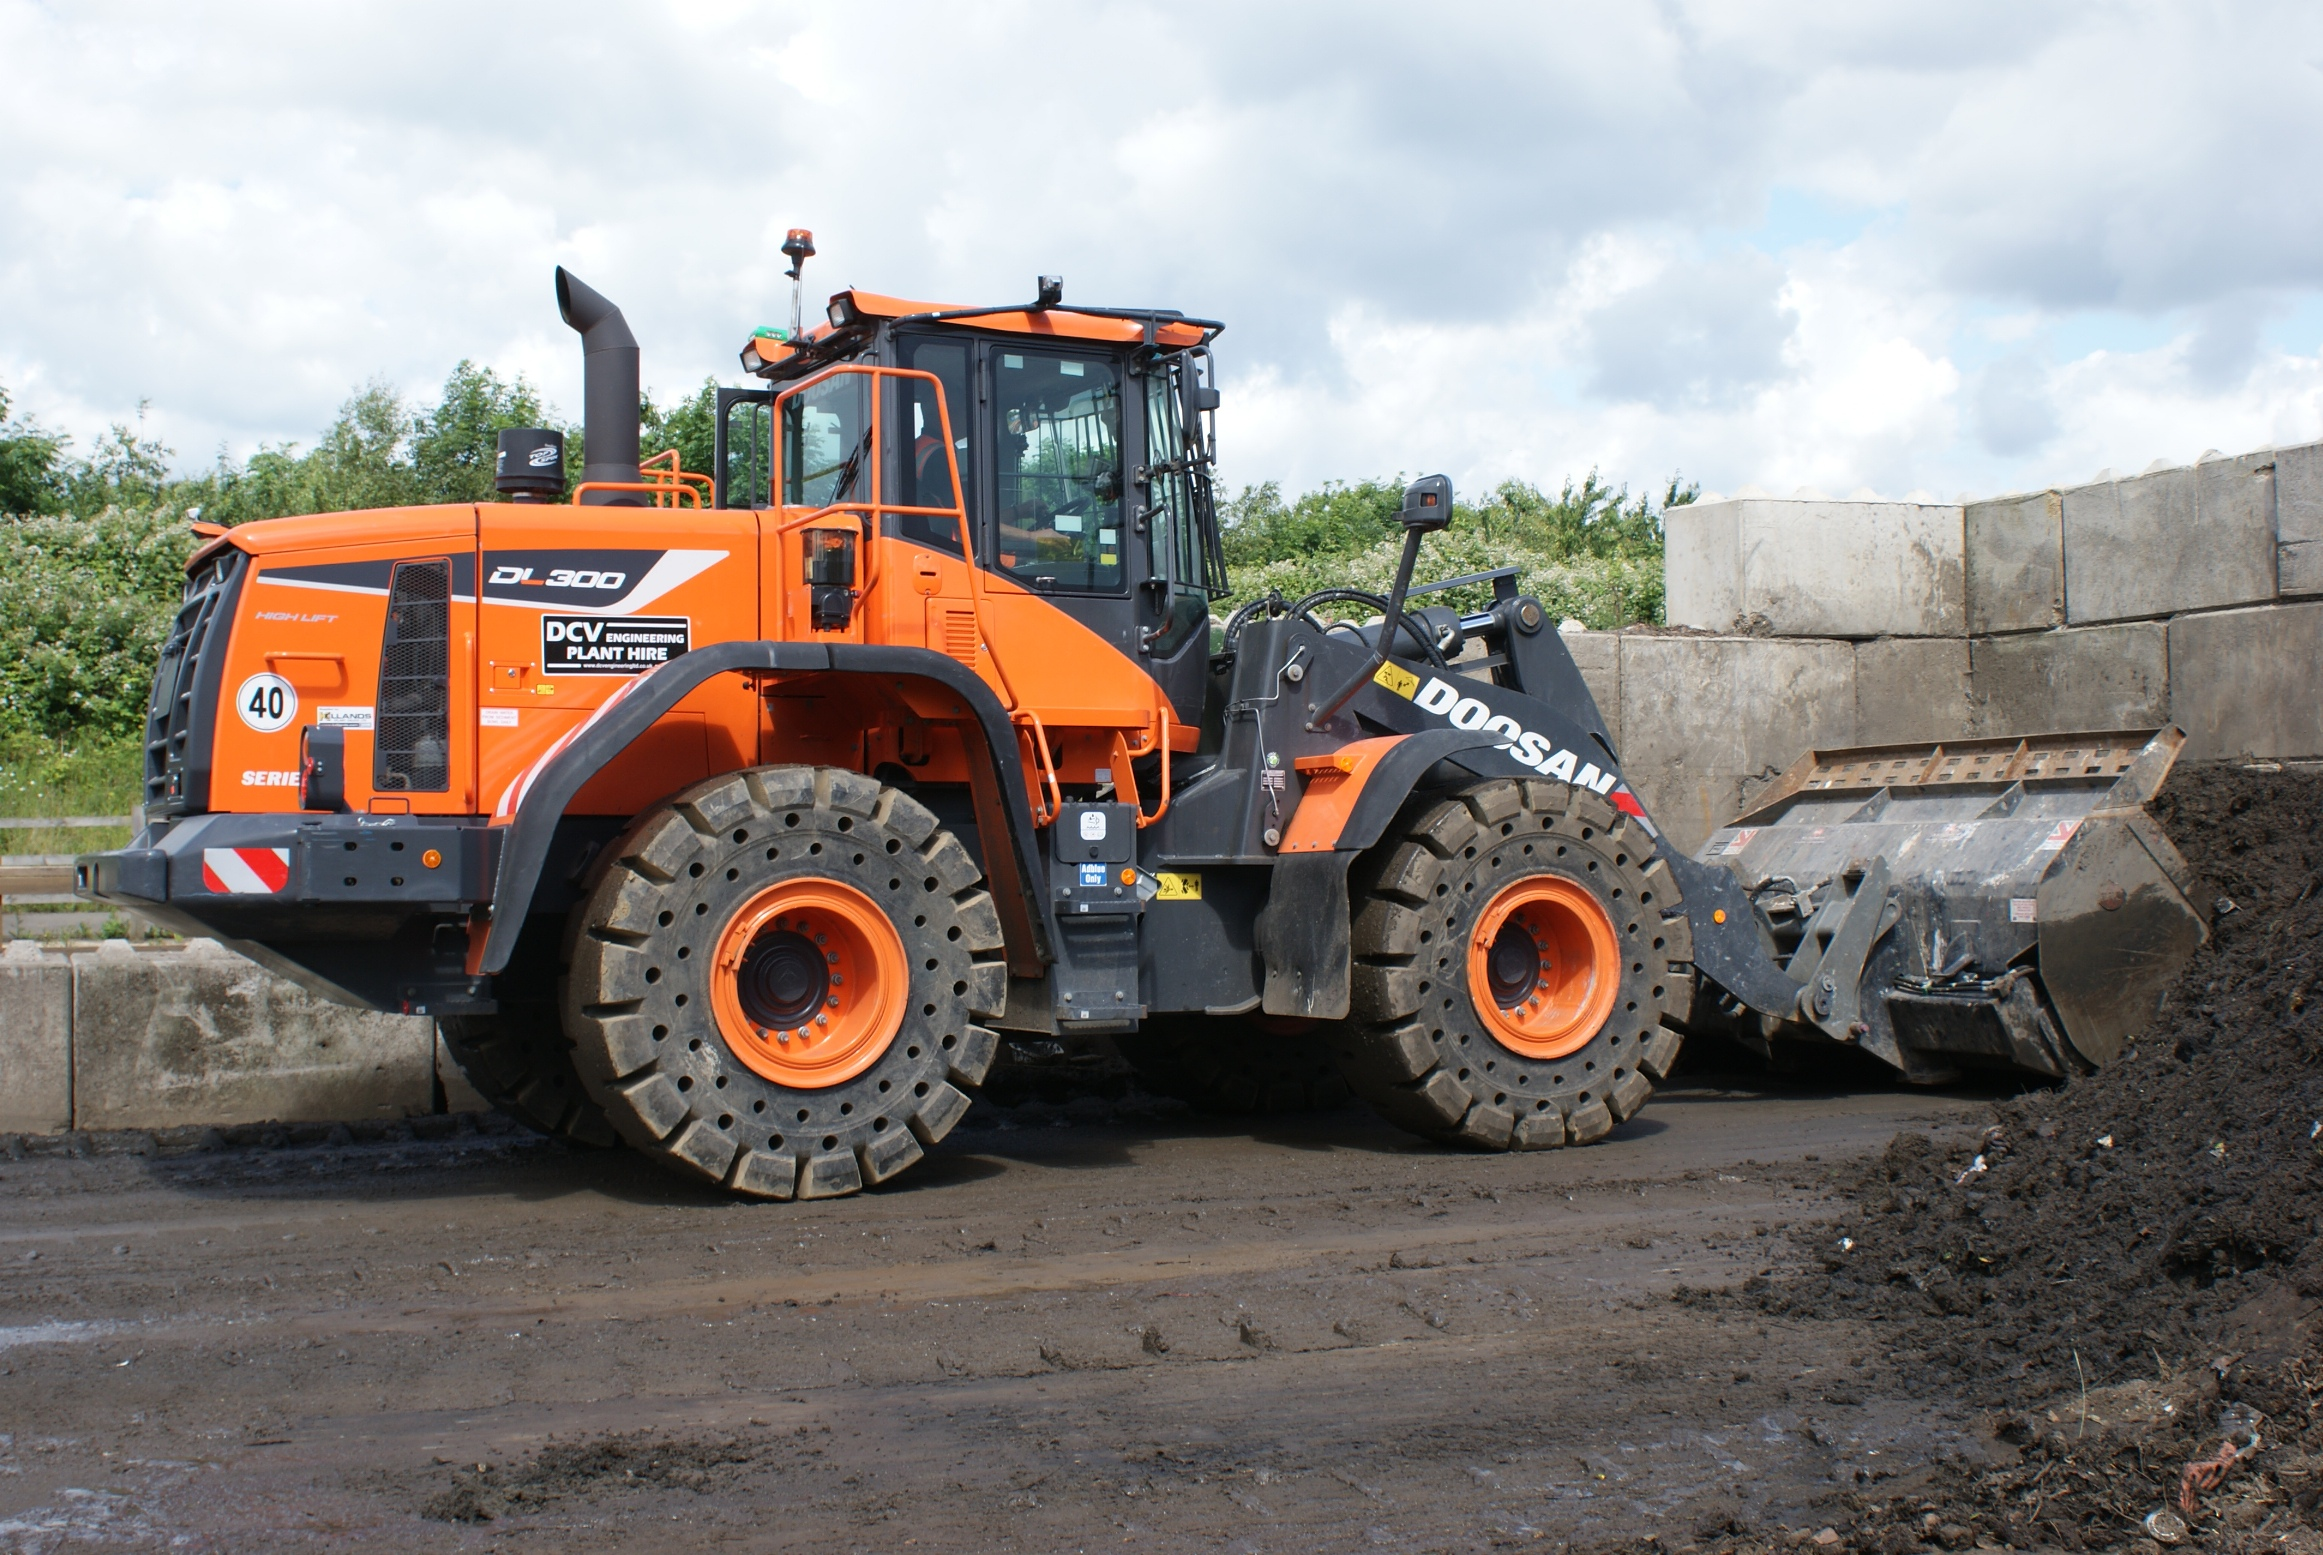 DCV Engineering Purchases First Doosan Wheel Loader